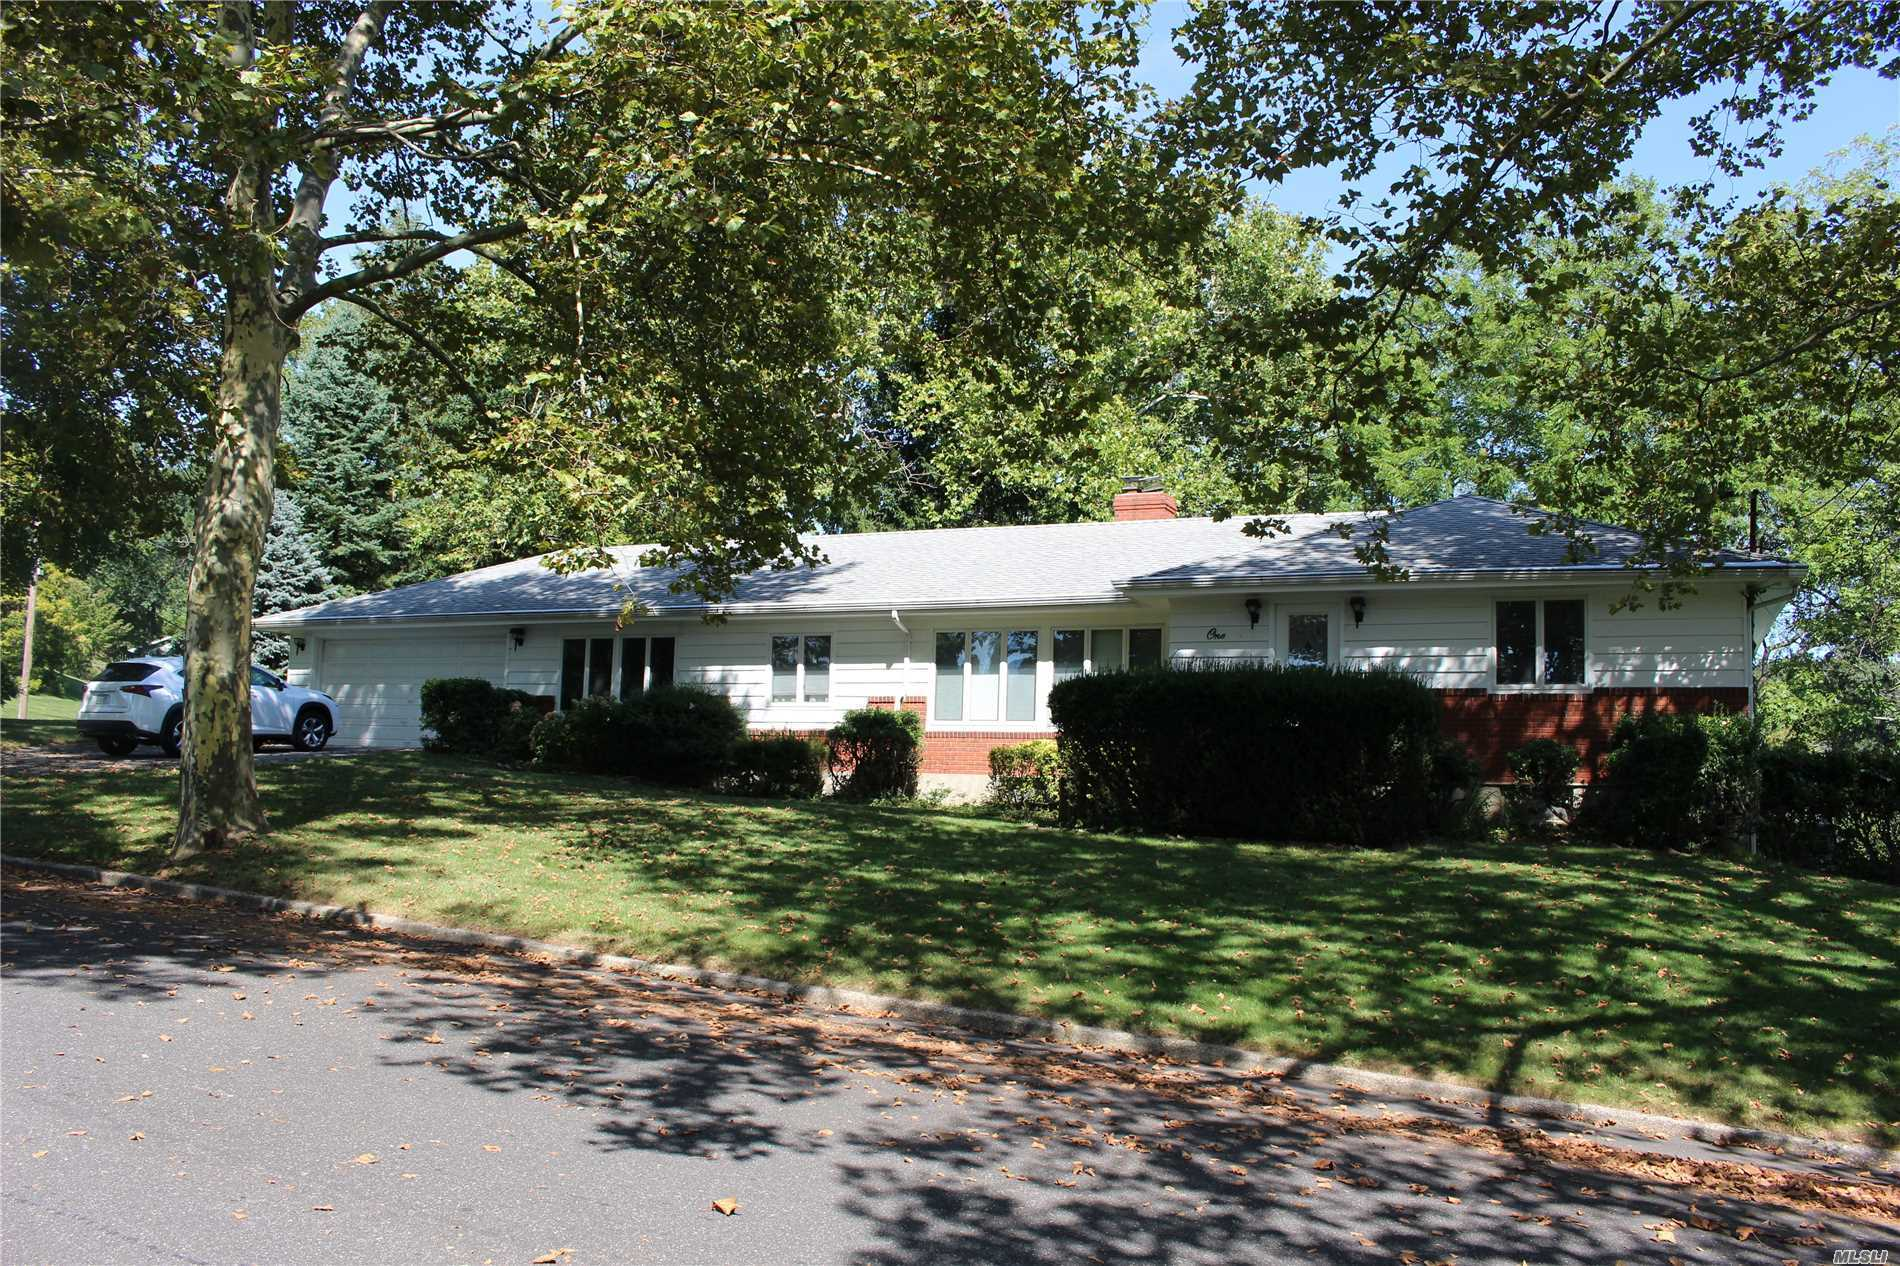 Pristine Beauty in the Heart of Prestigious Eaton's Neck. On a Cul De Sac with walking distance to water and beaches.This ranch offers -Formal Lr. and Dr., EIk, Den, 3Brs., 1.5 Baths.A Finished Ground level Basement for family entertainment with a family rm., 2 Brs., Fbth. CAC, Wood Floors, 200 Amp Electric, Anderson Windows.Oil heat with In-ground fiberglass oil tank.Kitchen opens to Deck overlooking grounds with a water view. Just move in and enjoy the lifestyle of Eatons Neck!